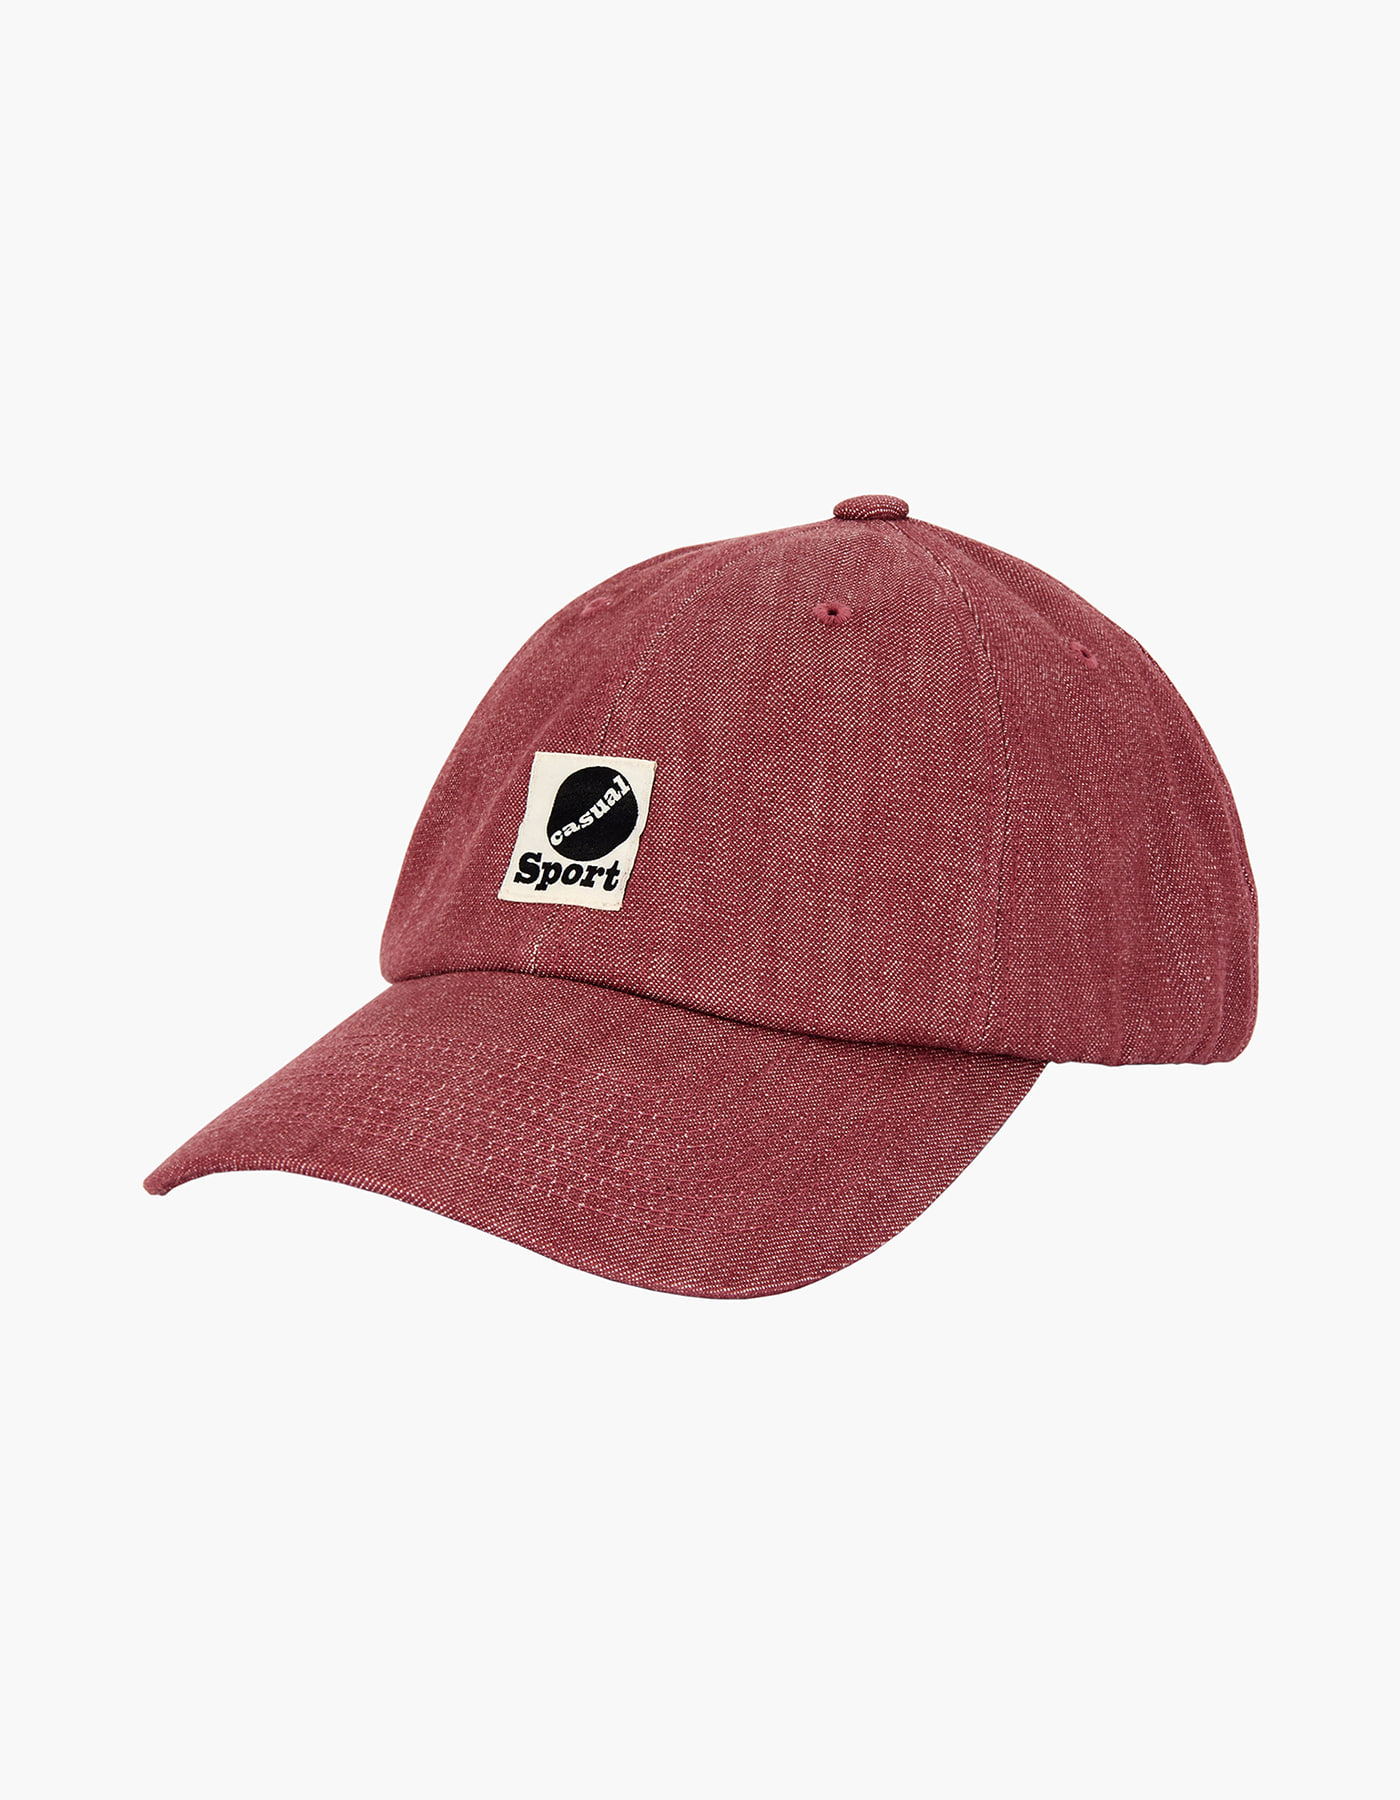 YARN DYED DENIM 6 PANEL CAP / RED